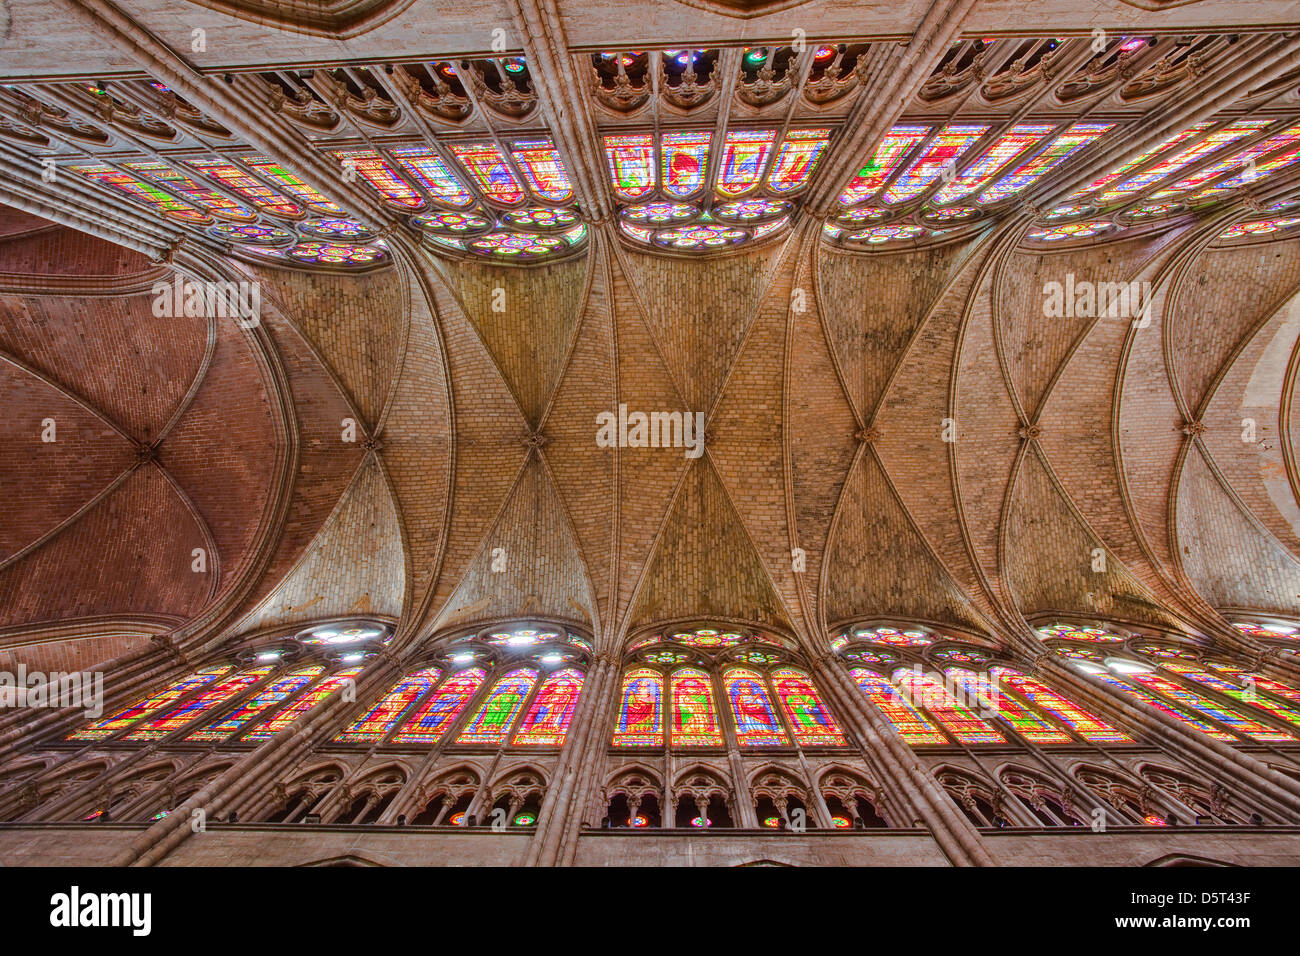 The roof of the nave in Saint Denis basilica, Paris. Stock Photo